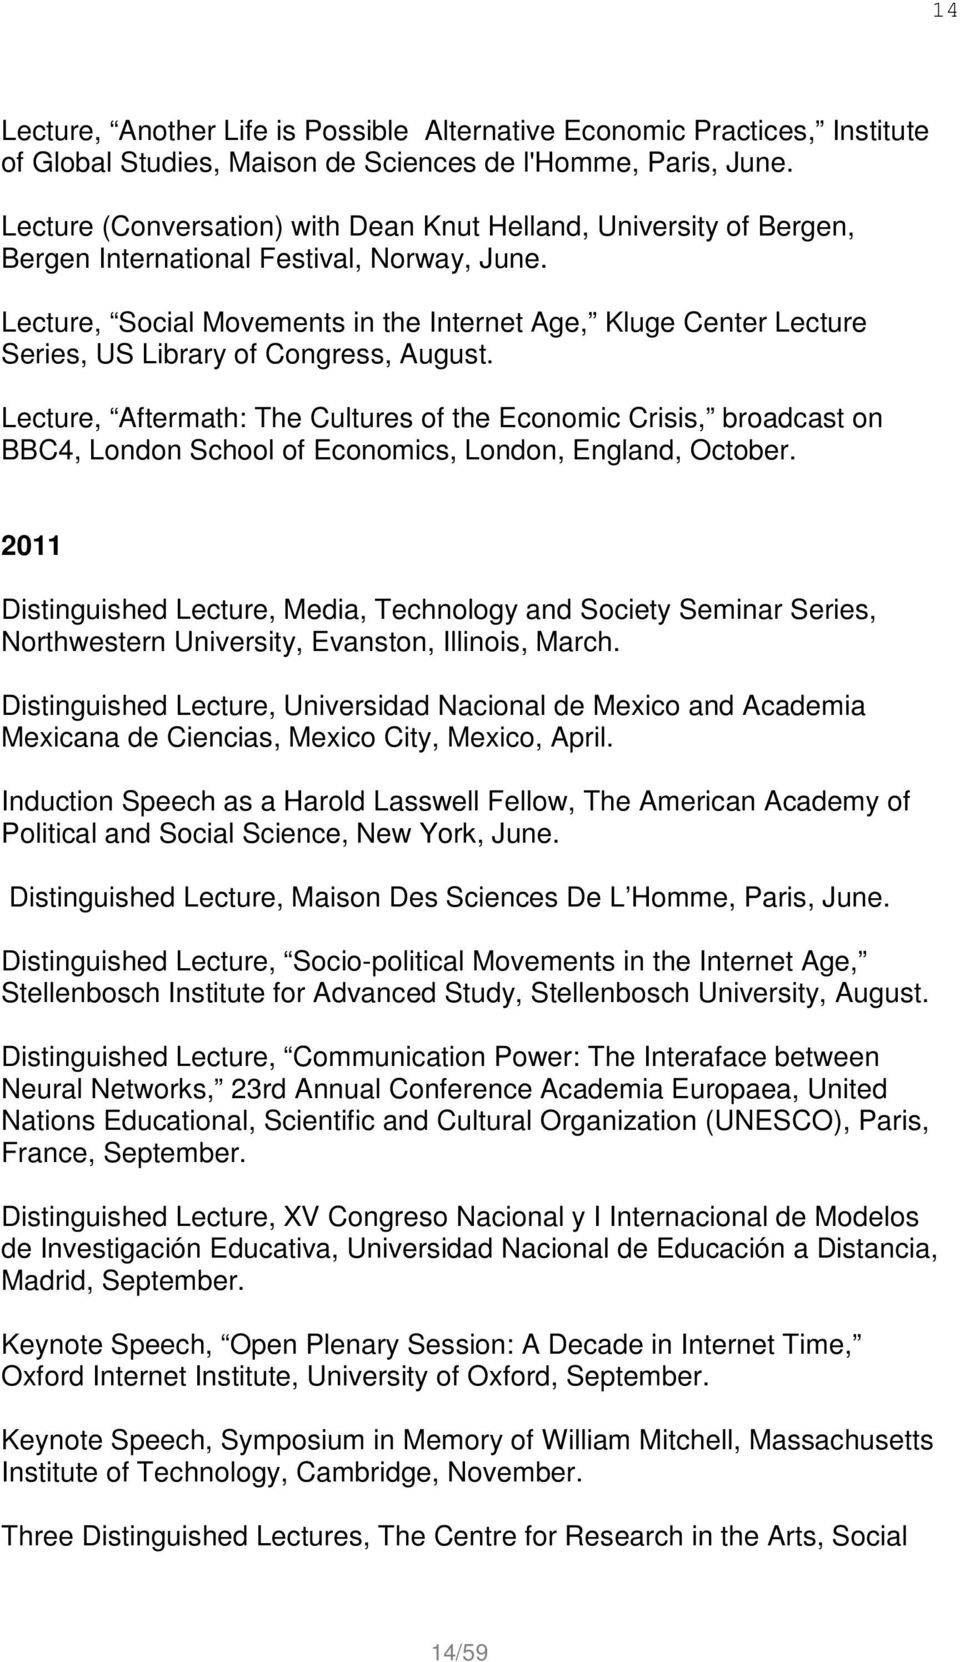 Lecture, Social Movements in the Internet Age, Kluge Center Lecture Series, US Library of Congress, August.